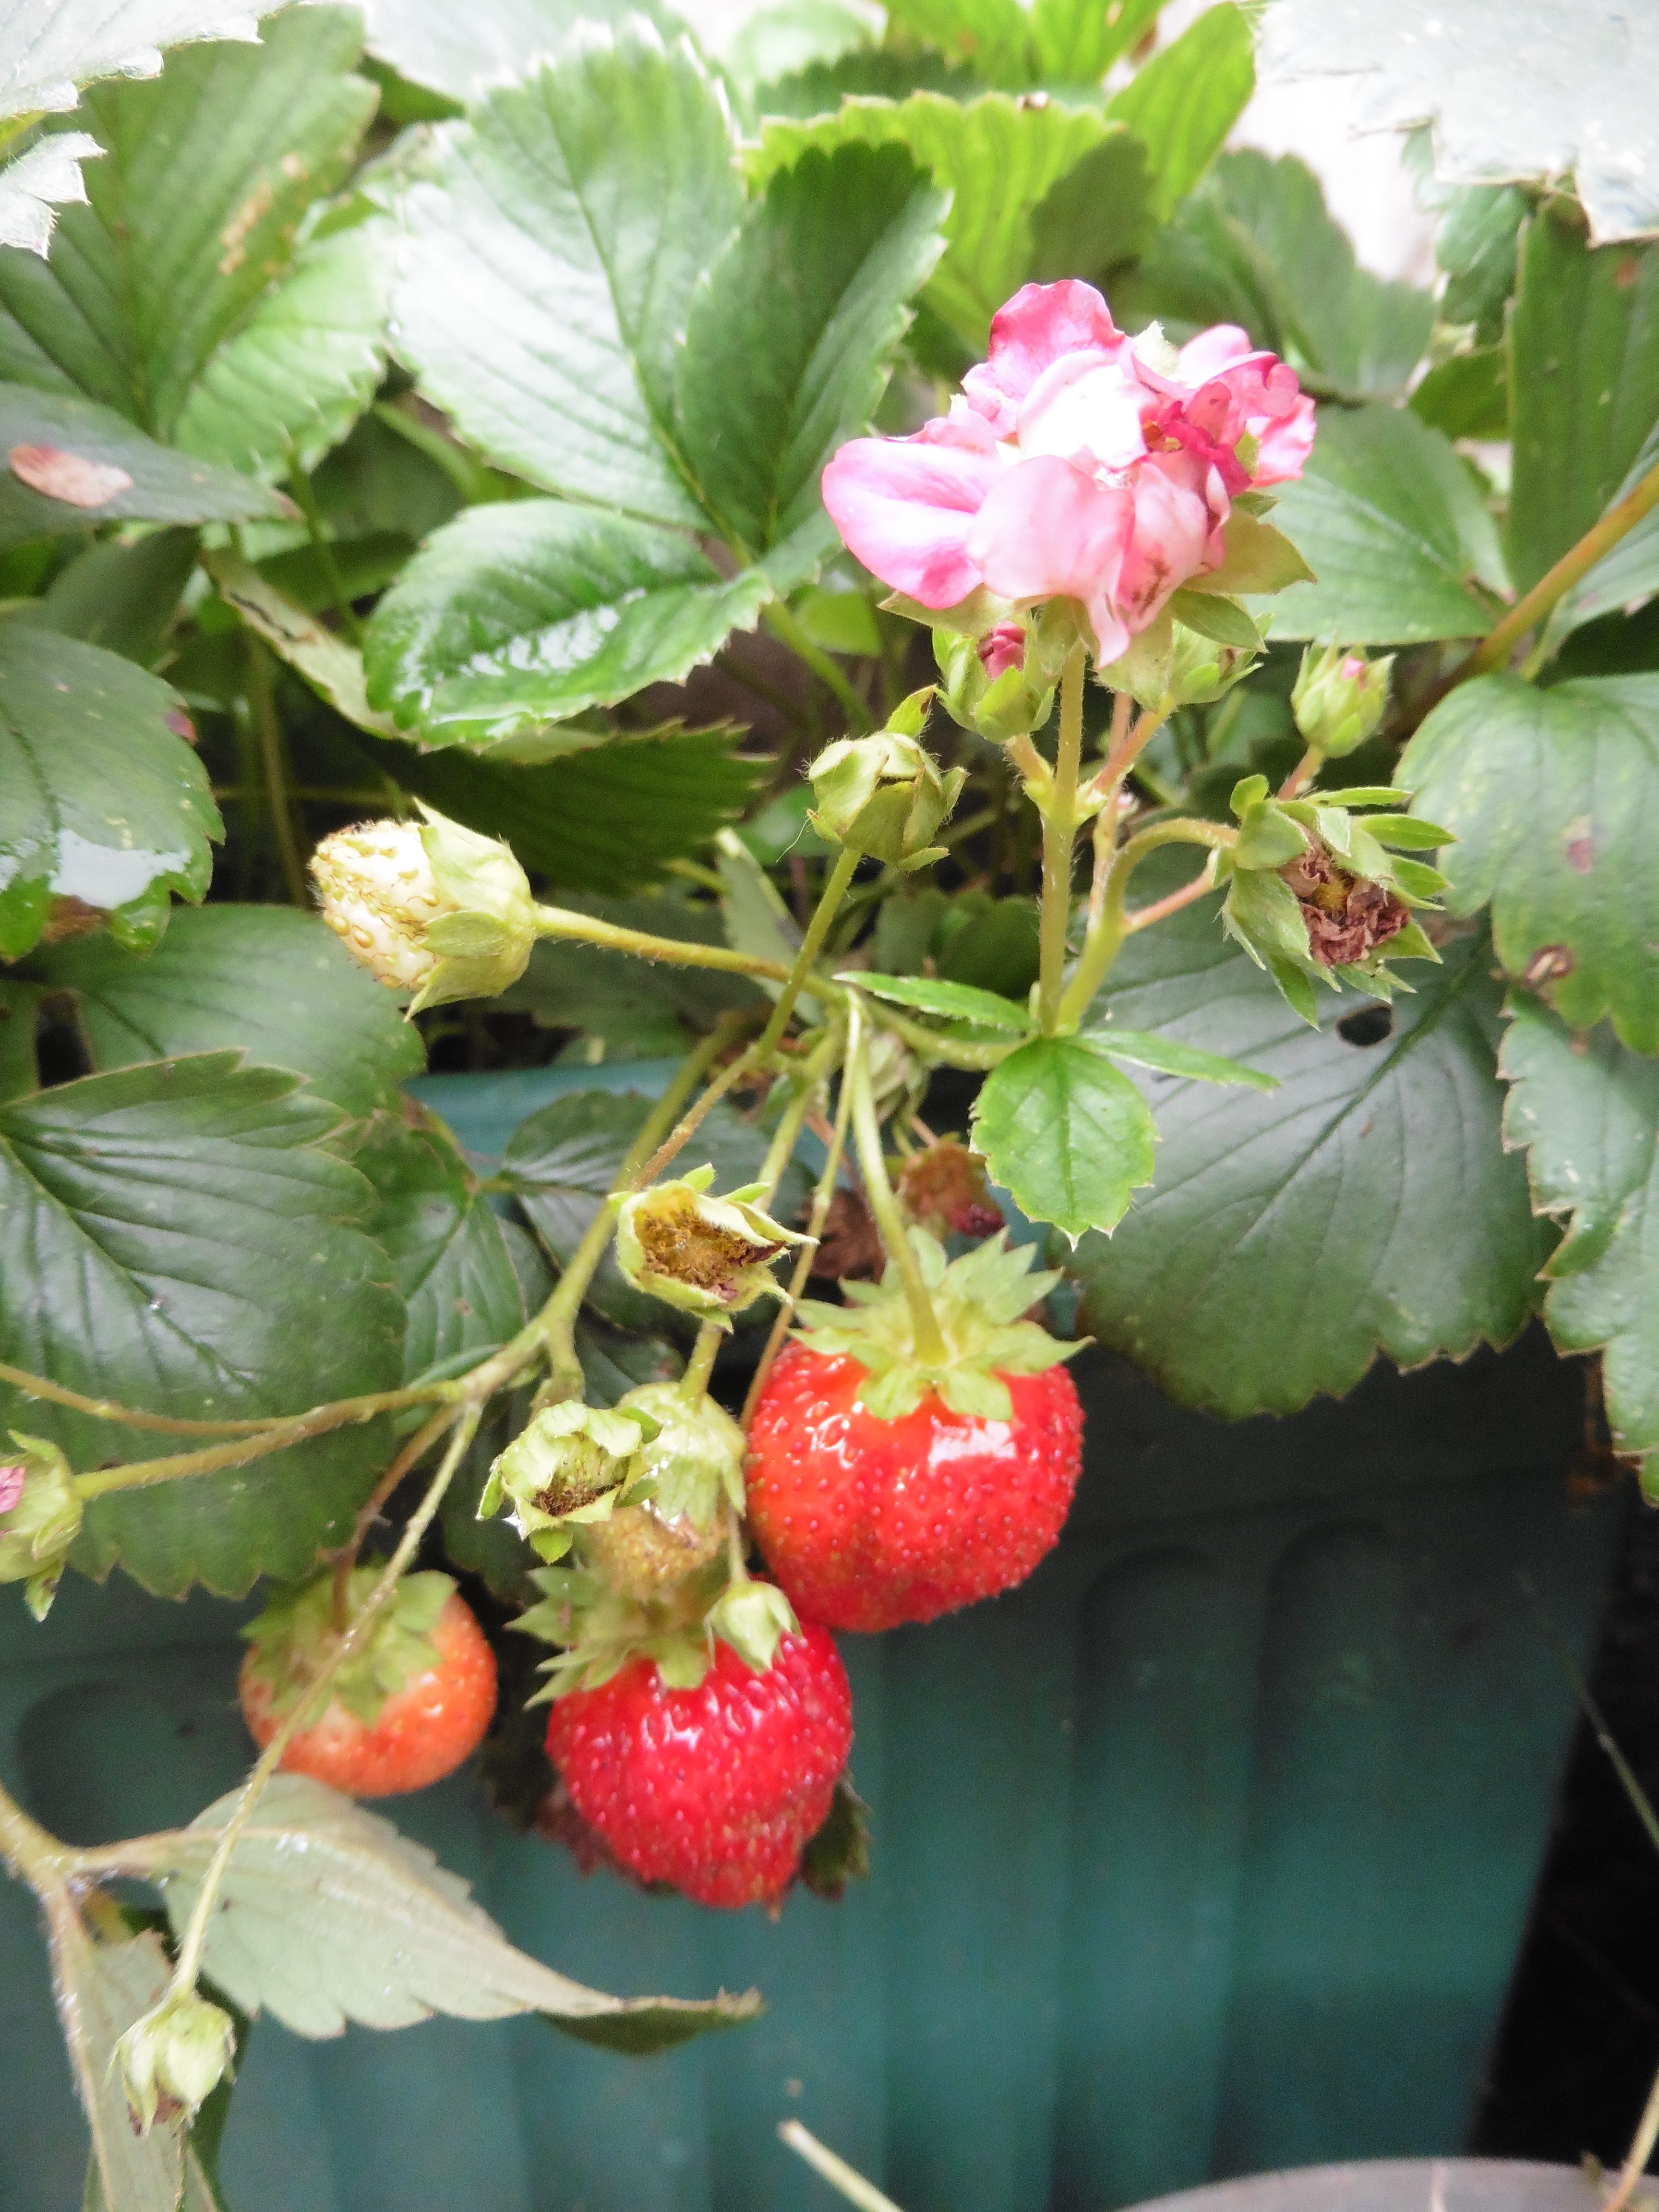 strawberry flower and fruit